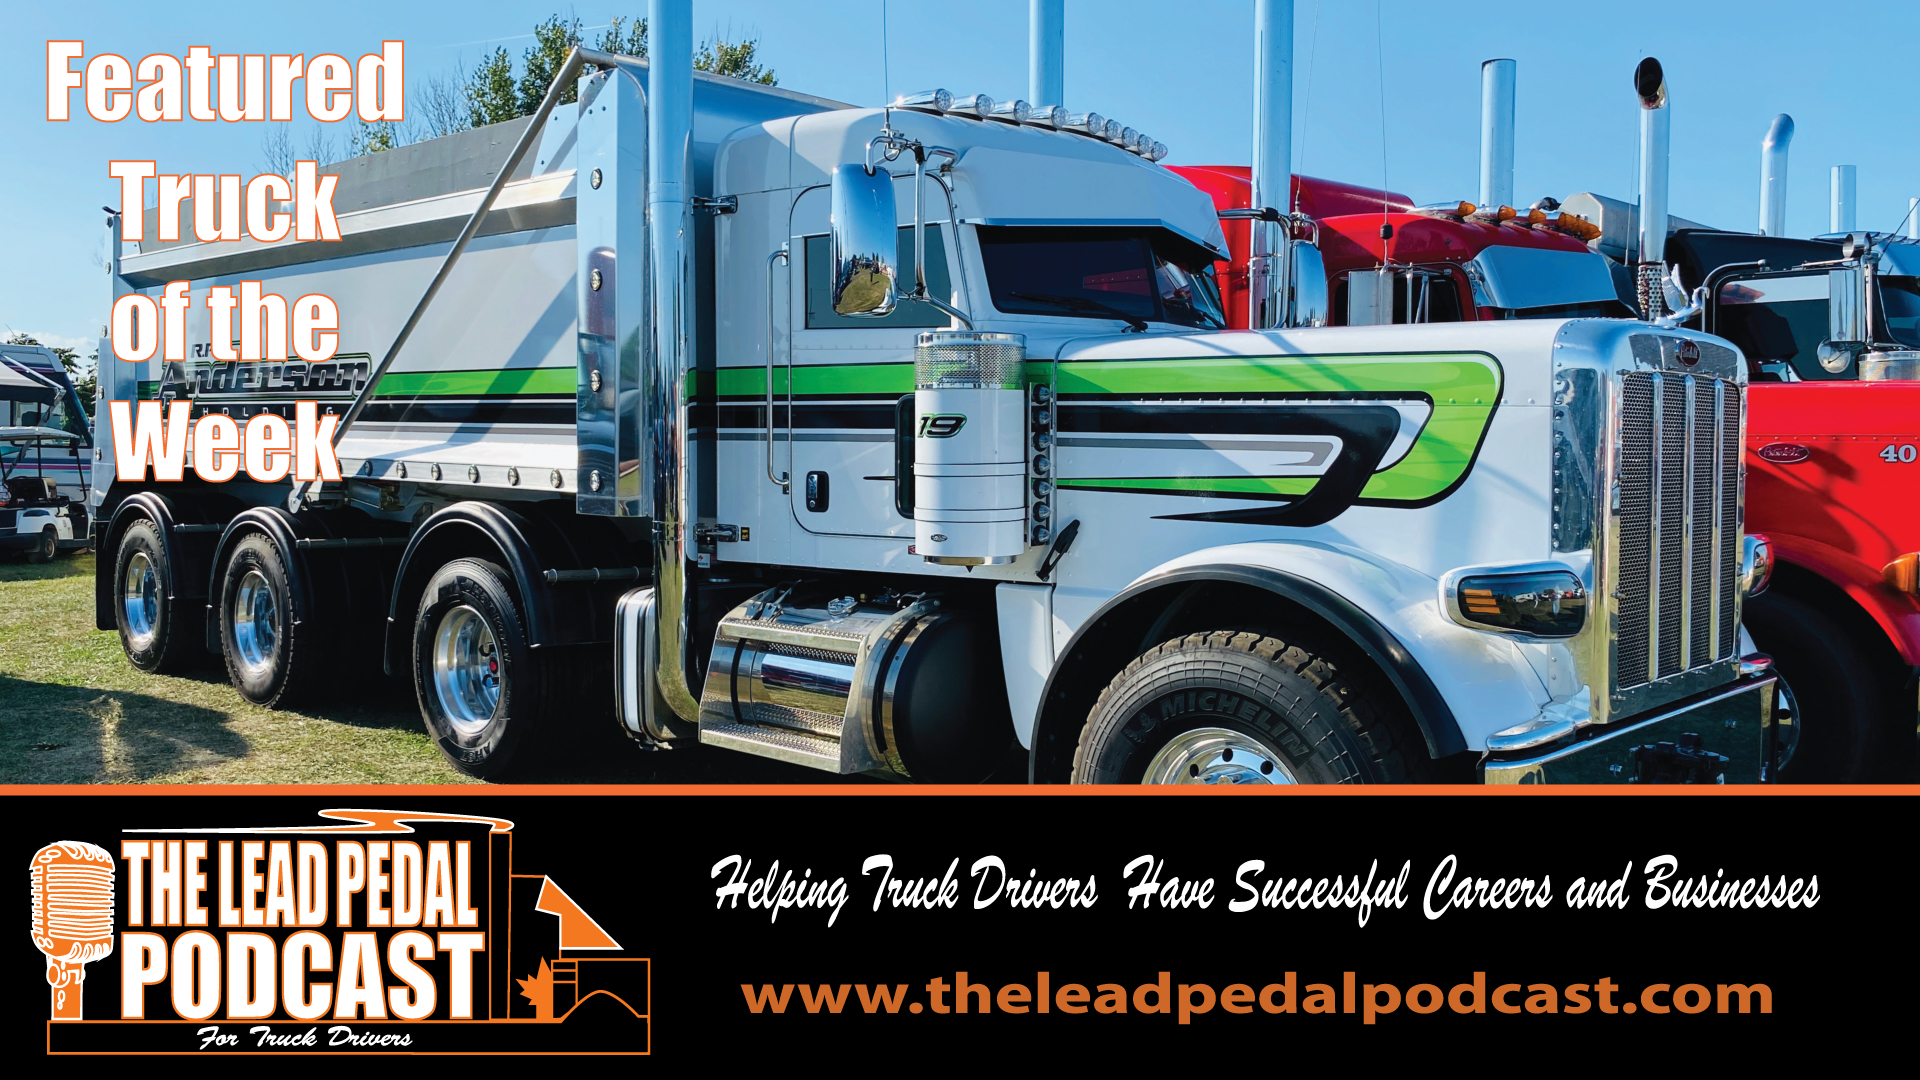 LP588 Featured Truck of the Week - 2021 Custom Peterbilt